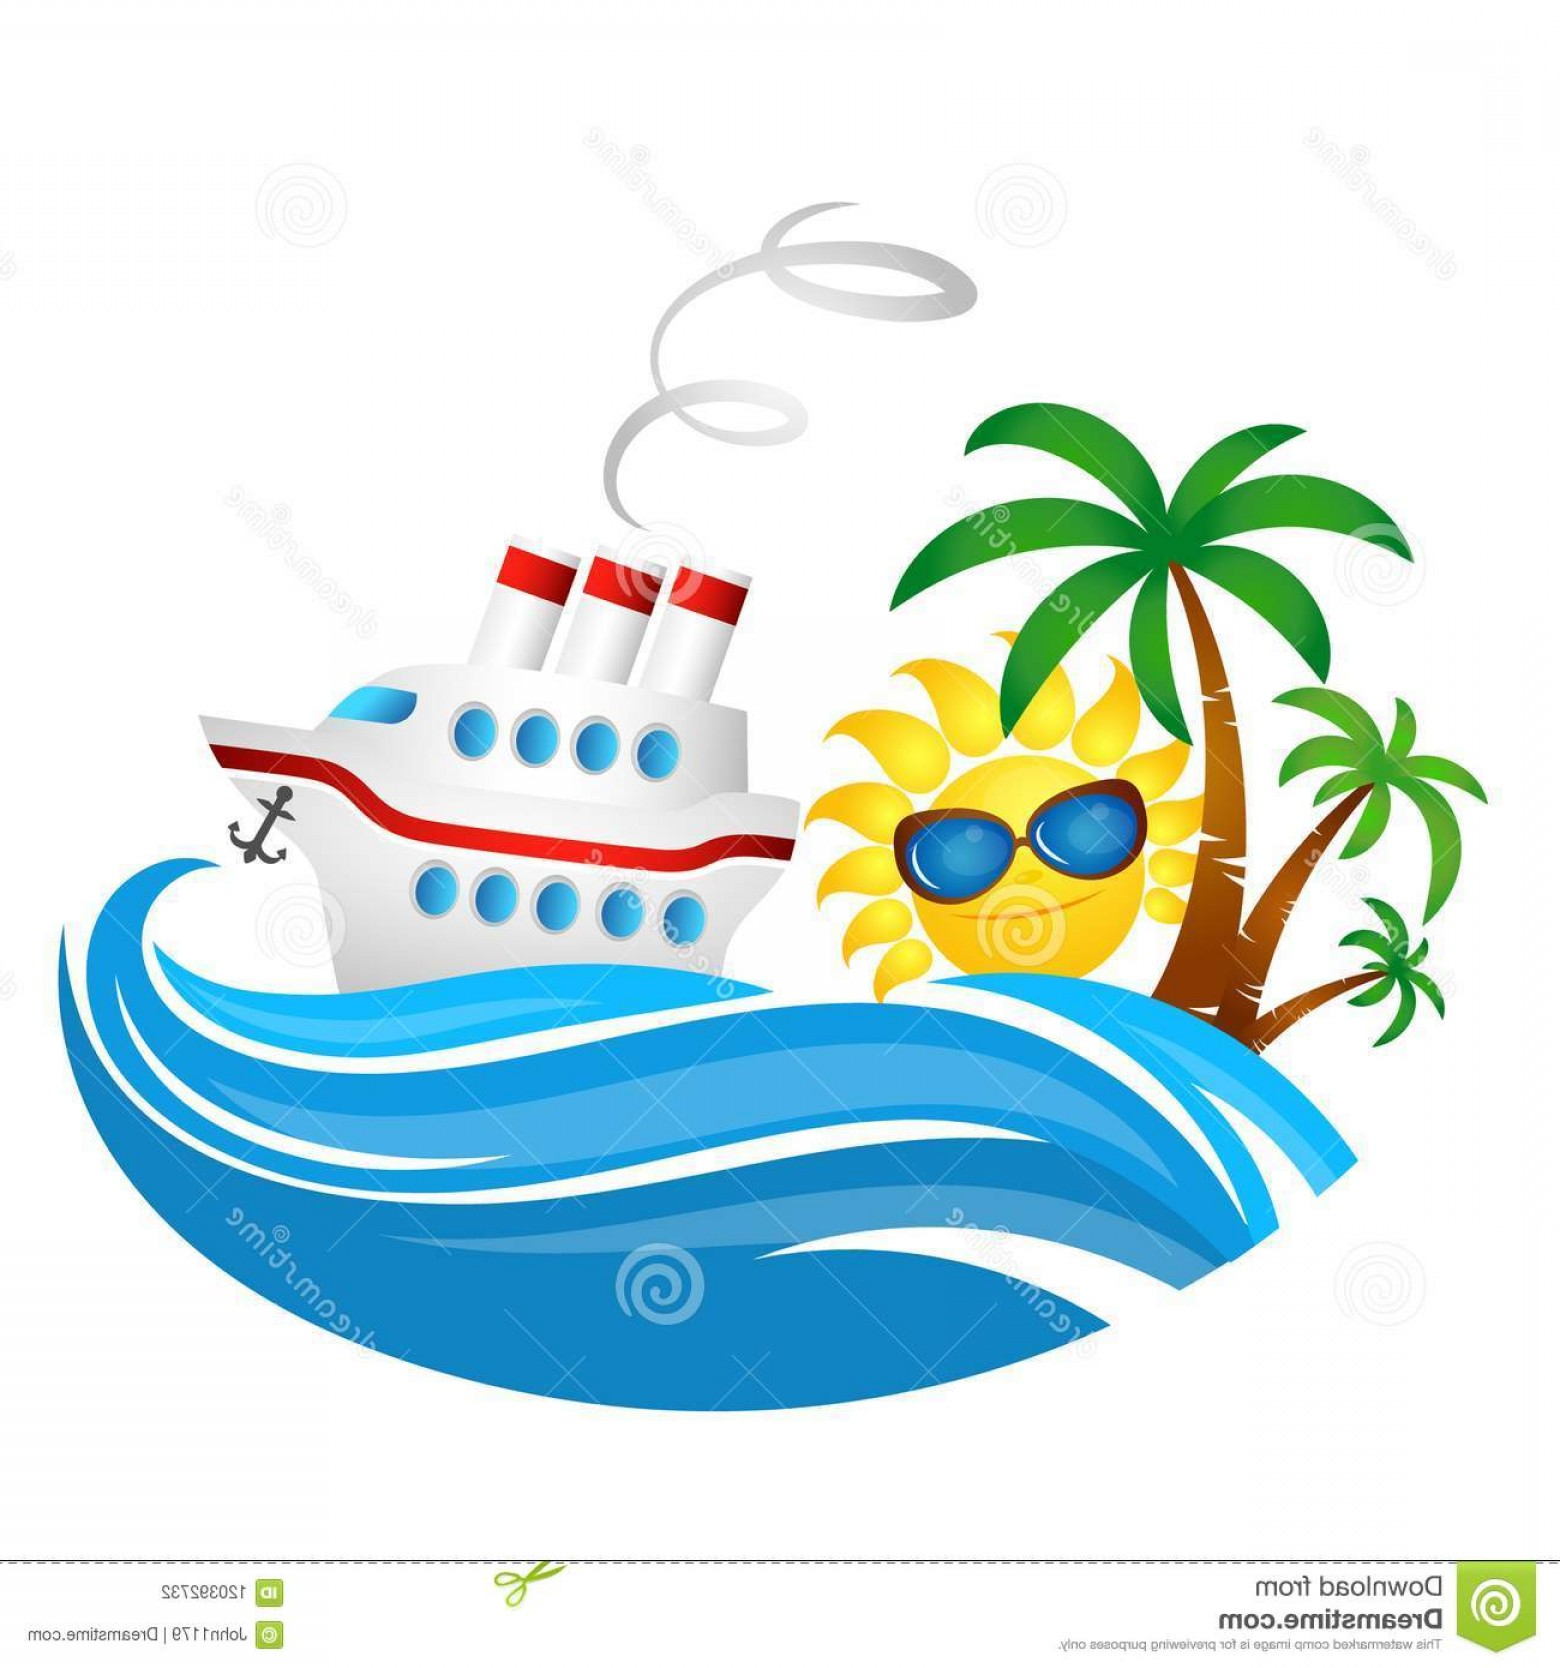 Waves With Cruise Ship Silhouette Vector: Cruise Ship Wave Sun Cruise Ship Wave Sun Illustration Travel Image